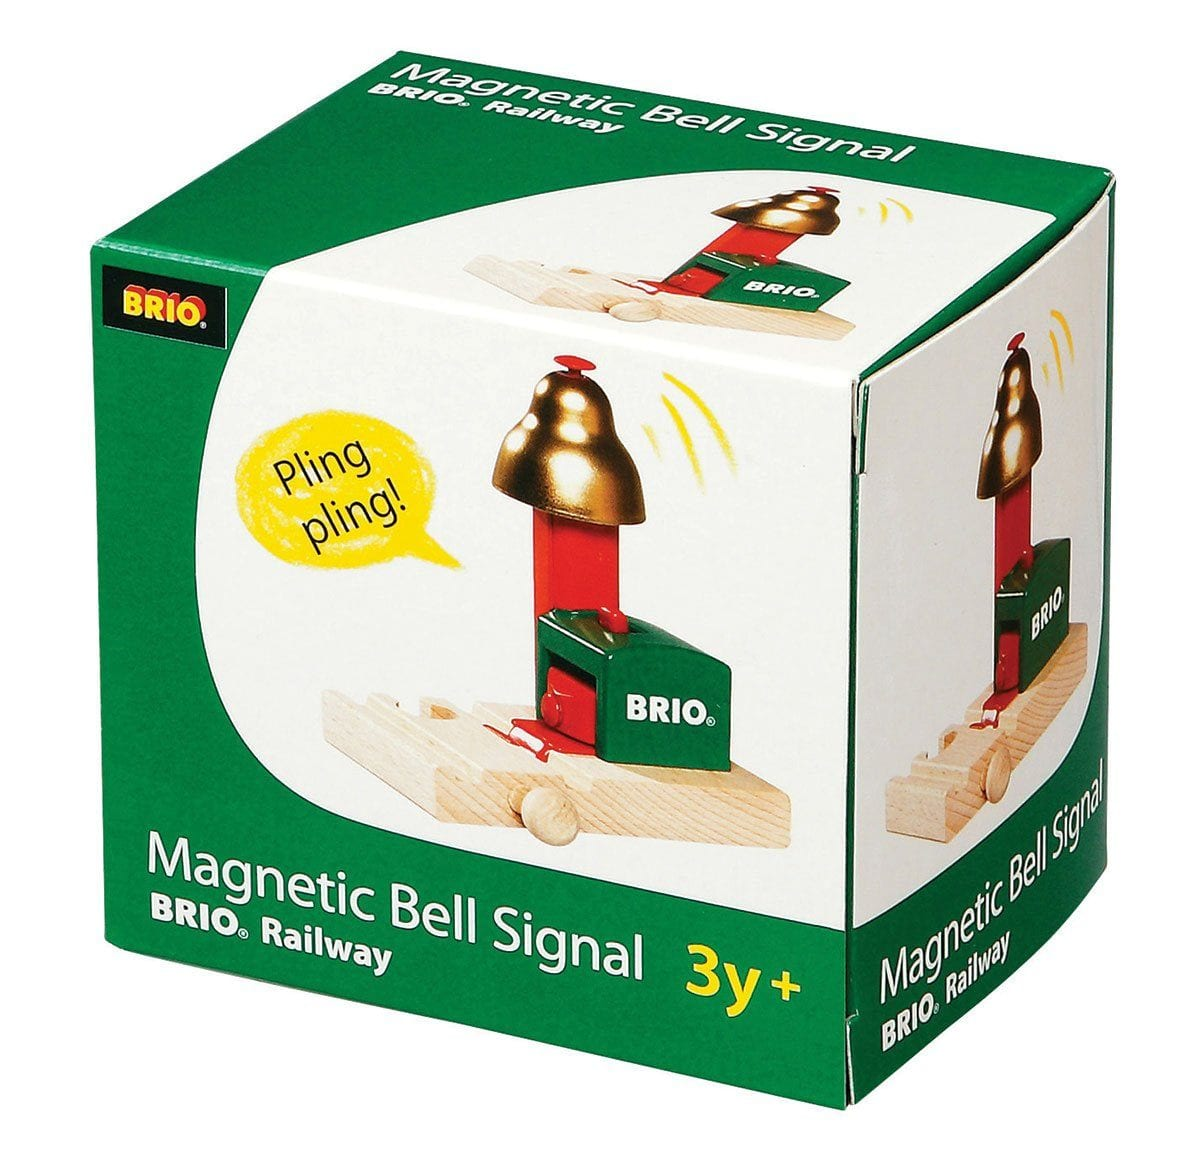 Brio Magnetic Bell Signal - huggle